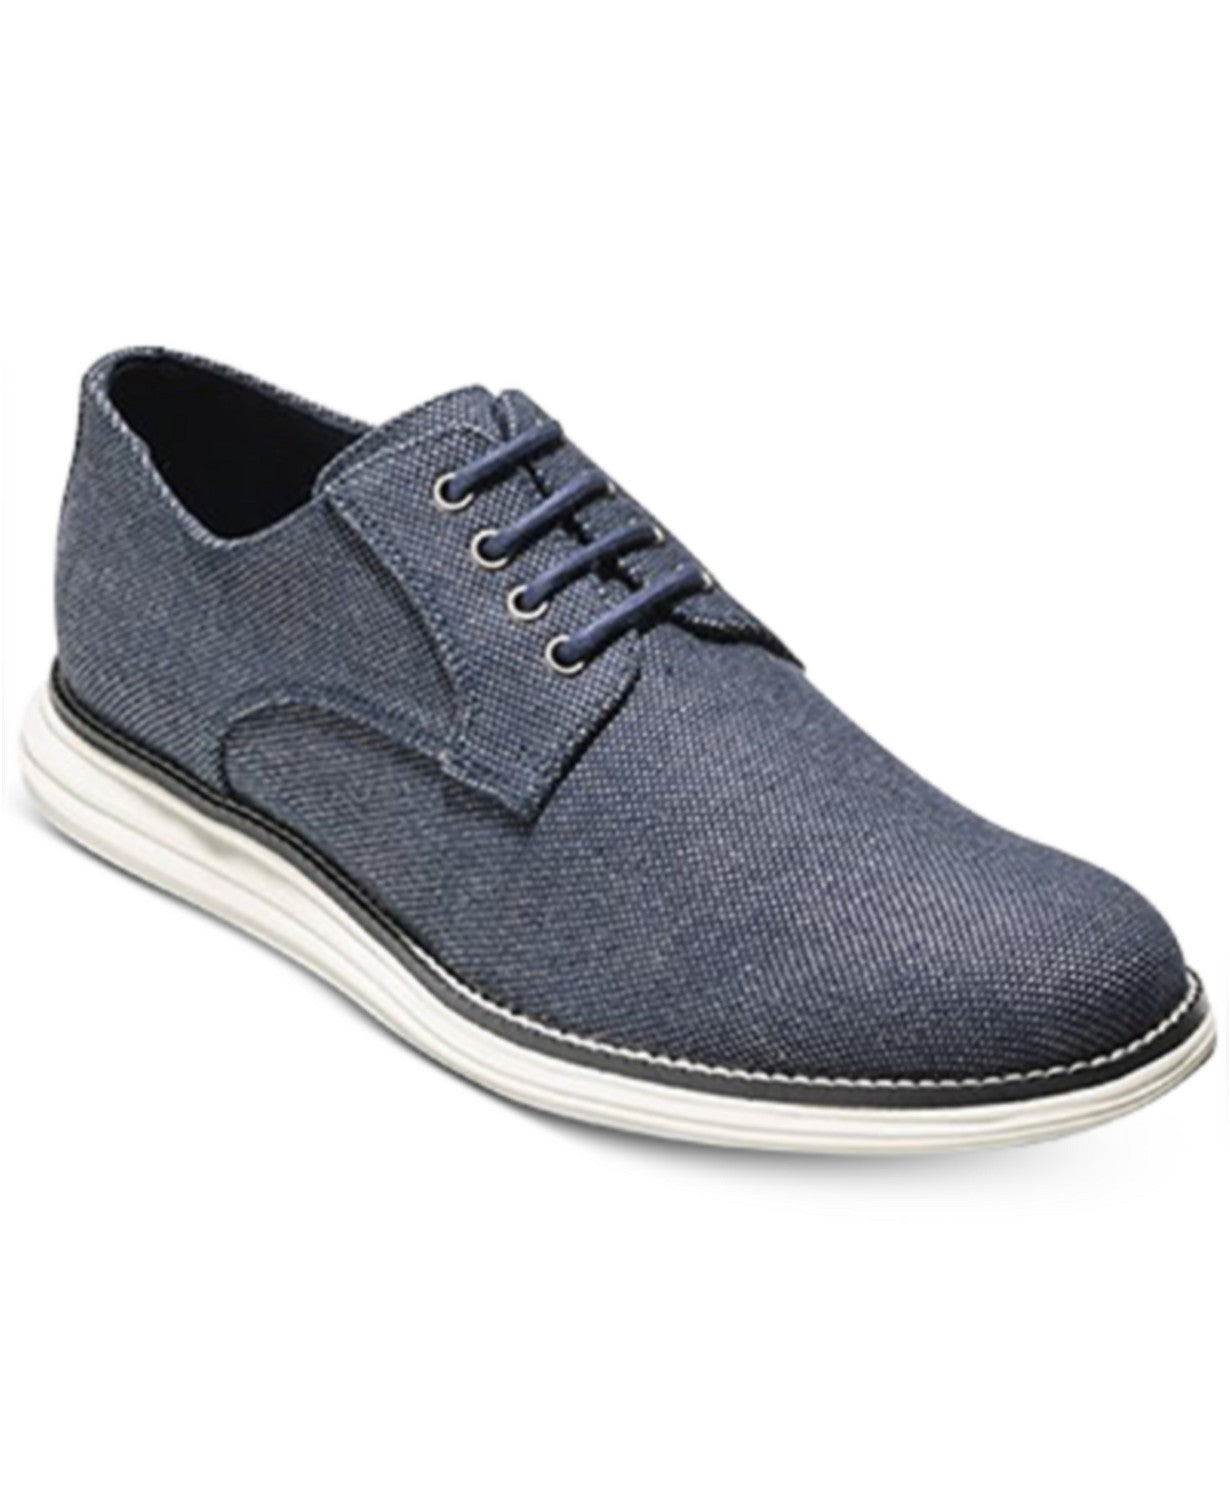 Cole Haan  Men's Original Grand Plain-Toe Canvas Oxfords